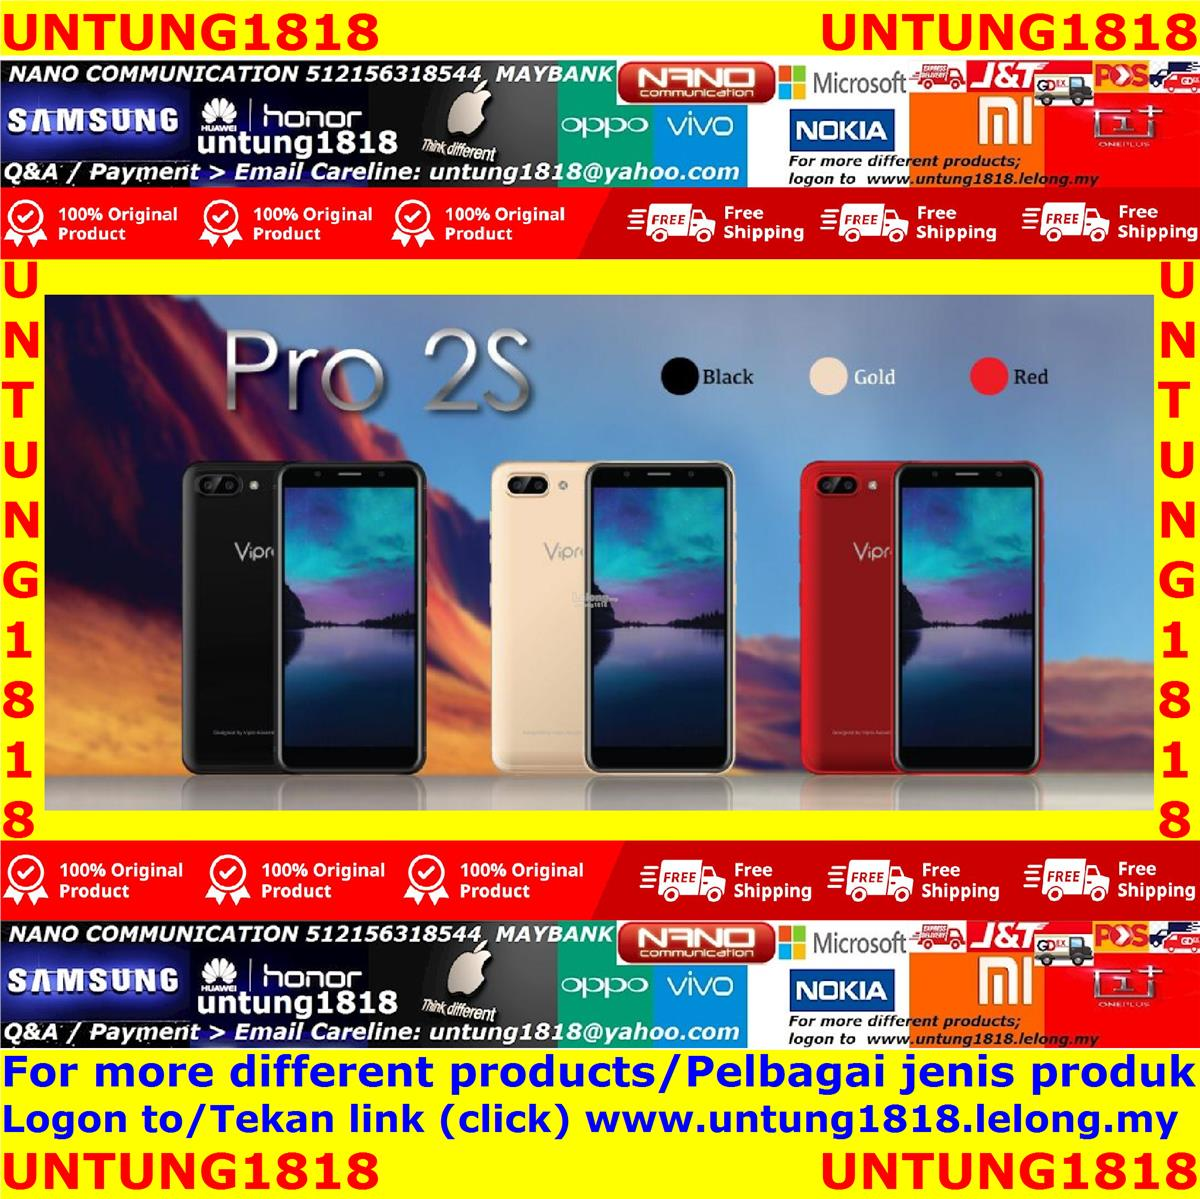 Original Malaysia ViPro.ViPro Pro 2S Android Smartphone